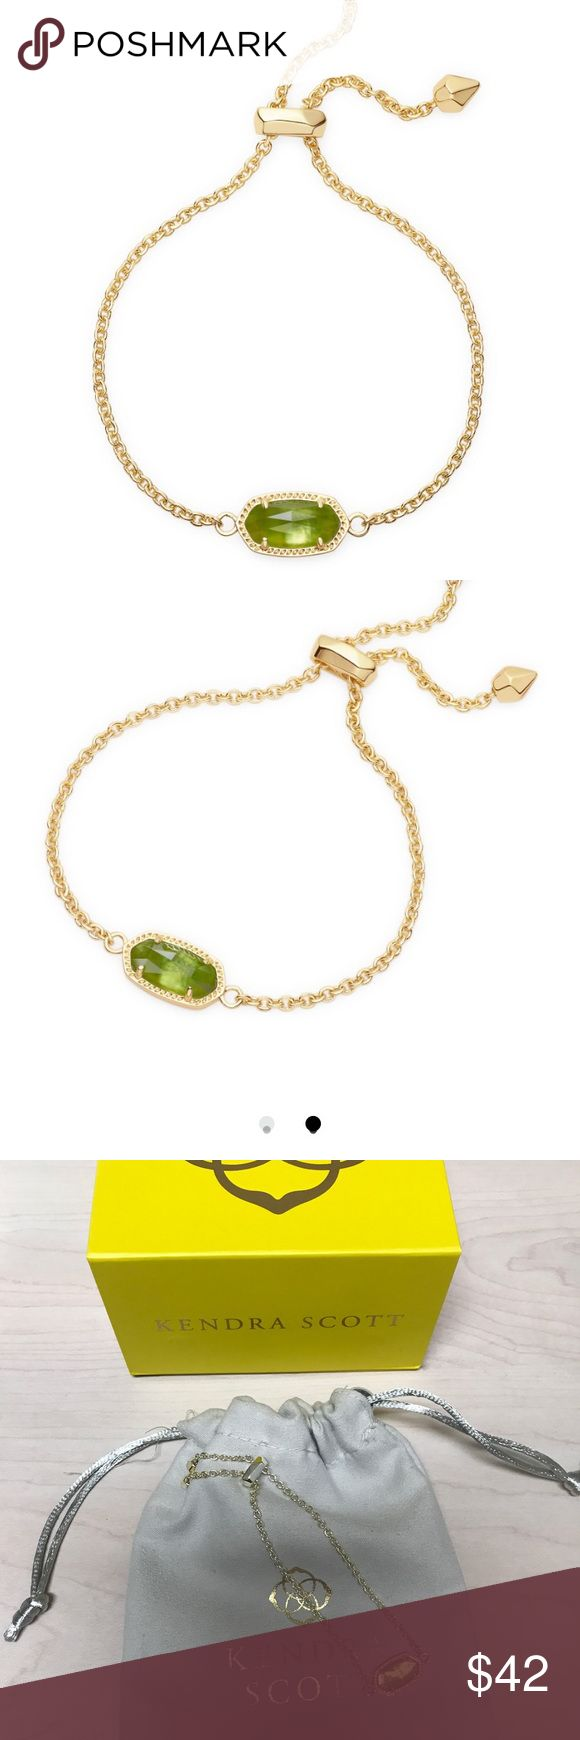 """Kendra Scott Elaina Adjustable Chain Bracelet Whether you like your bracelets loose or close to the wrist, the adjustable Elaina Bracelet in Peridot Illusion is a delicate addition to any arm party. Gift Hint: This is perfect for August birthdays!  • 14K Gold Plated Over Brass • Size: 0.38""""L x 0.75""""W stationary pendant, 9""""L circumference • Adjustable sliding bead closure • Material: peridot illusion Kendra Scott Jewelry Bracelets"""